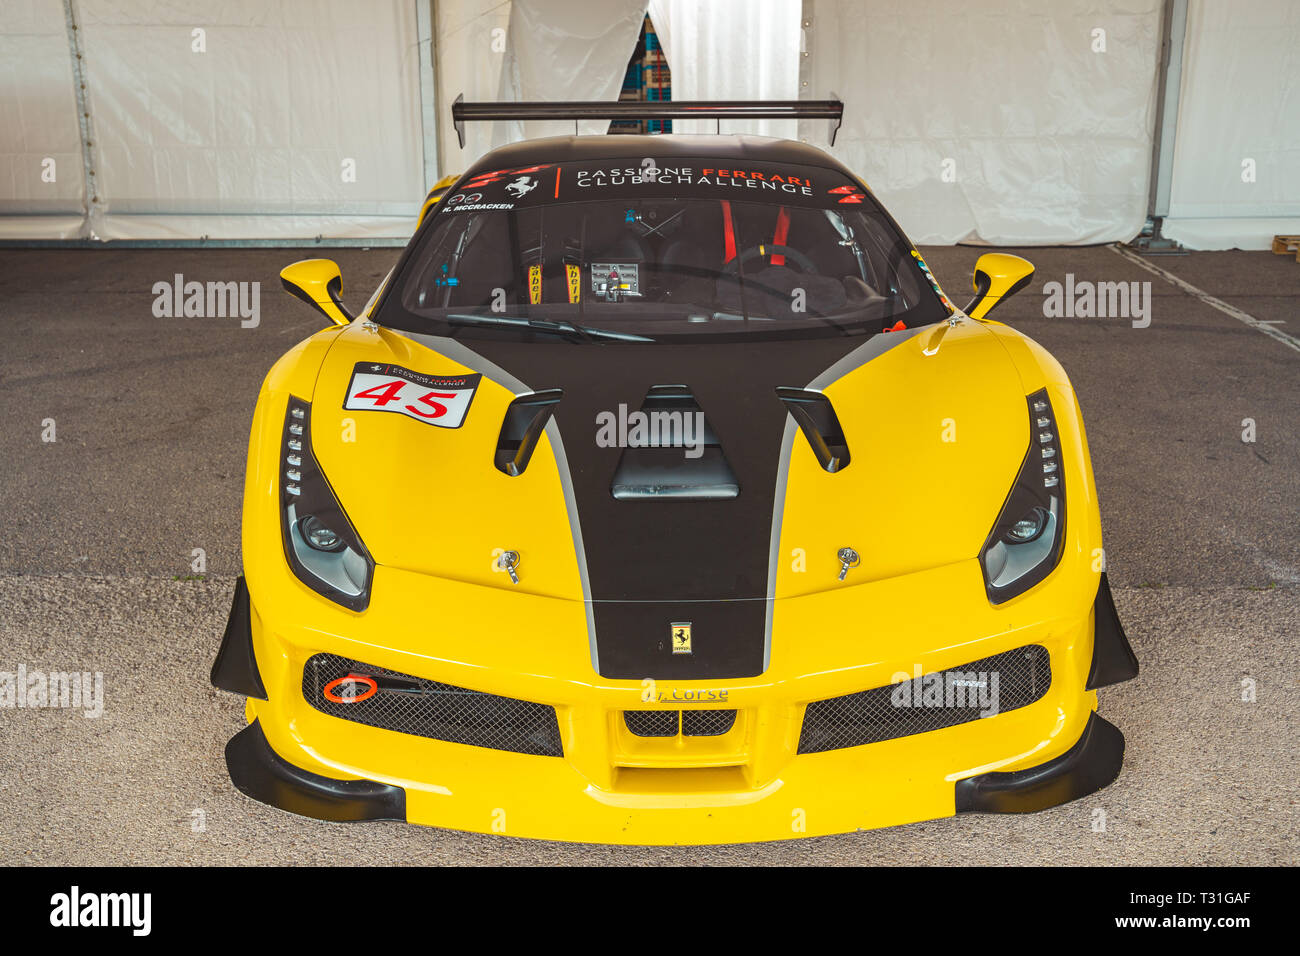 Valencia Spain March 30 2019 Yellow Ferrari 458 Speciale A Luxury Sport Car Car Showroom Front View Stock Photo Alamy